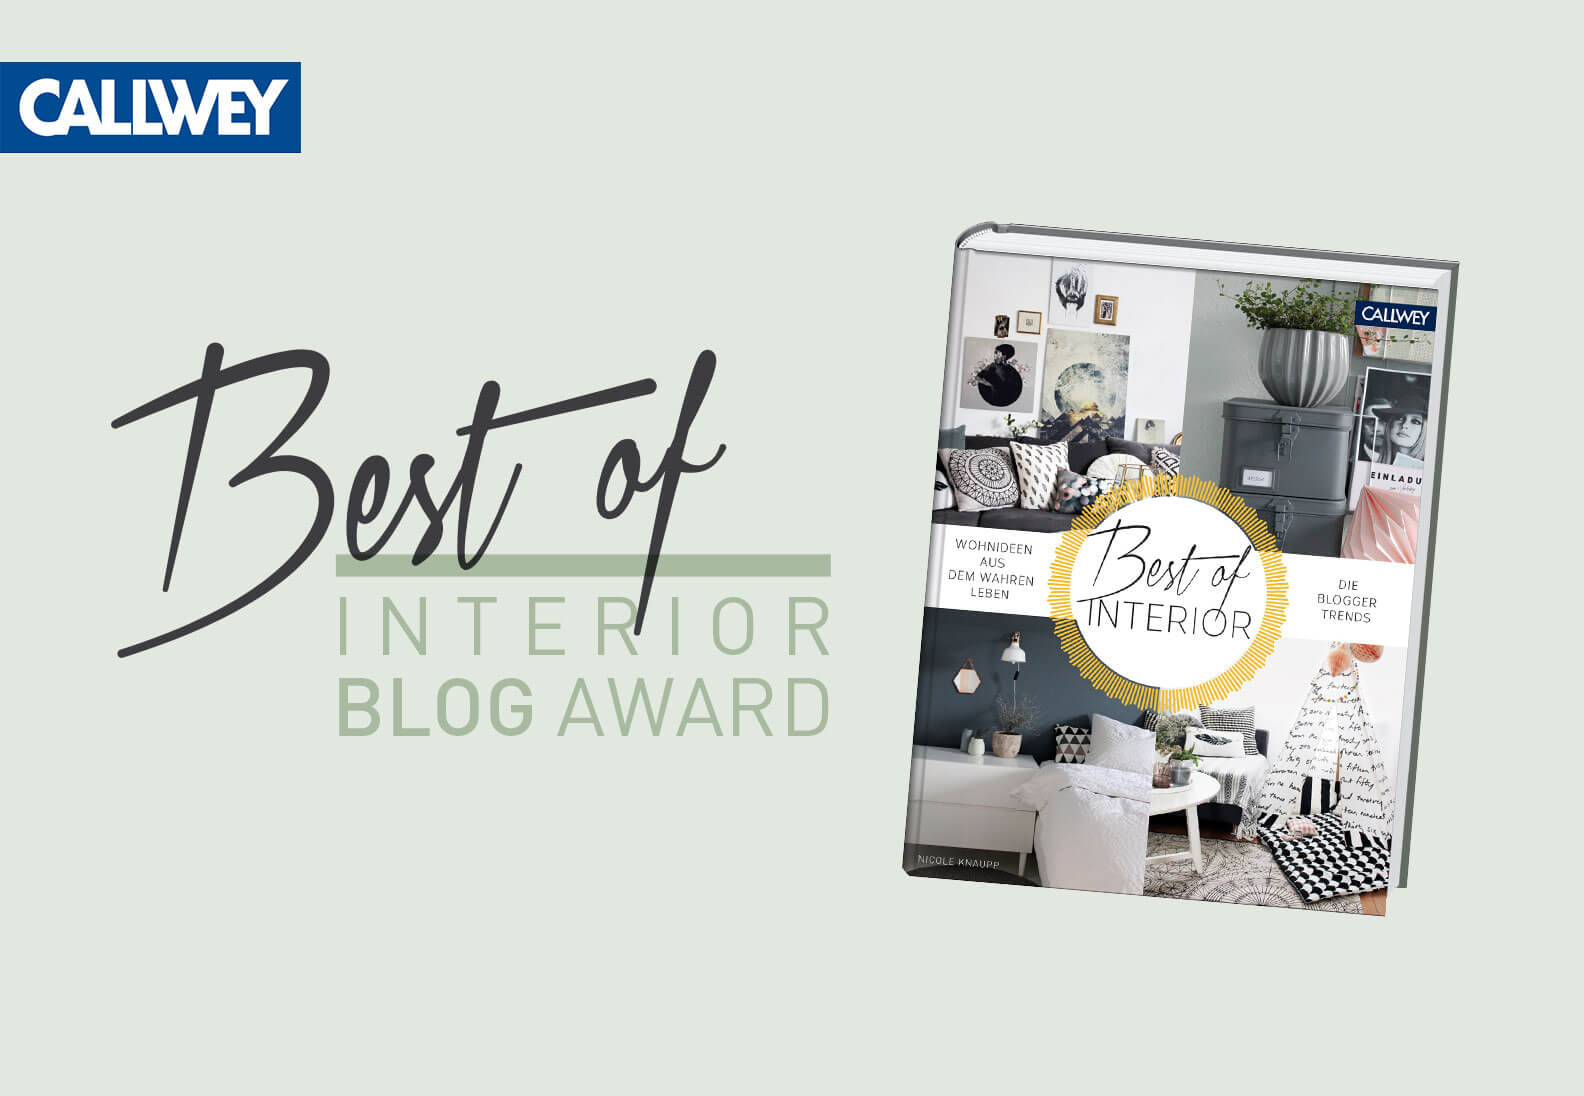 best of interior blog award wohnideen aus dem wahren leben sistermag. Black Bedroom Furniture Sets. Home Design Ideas